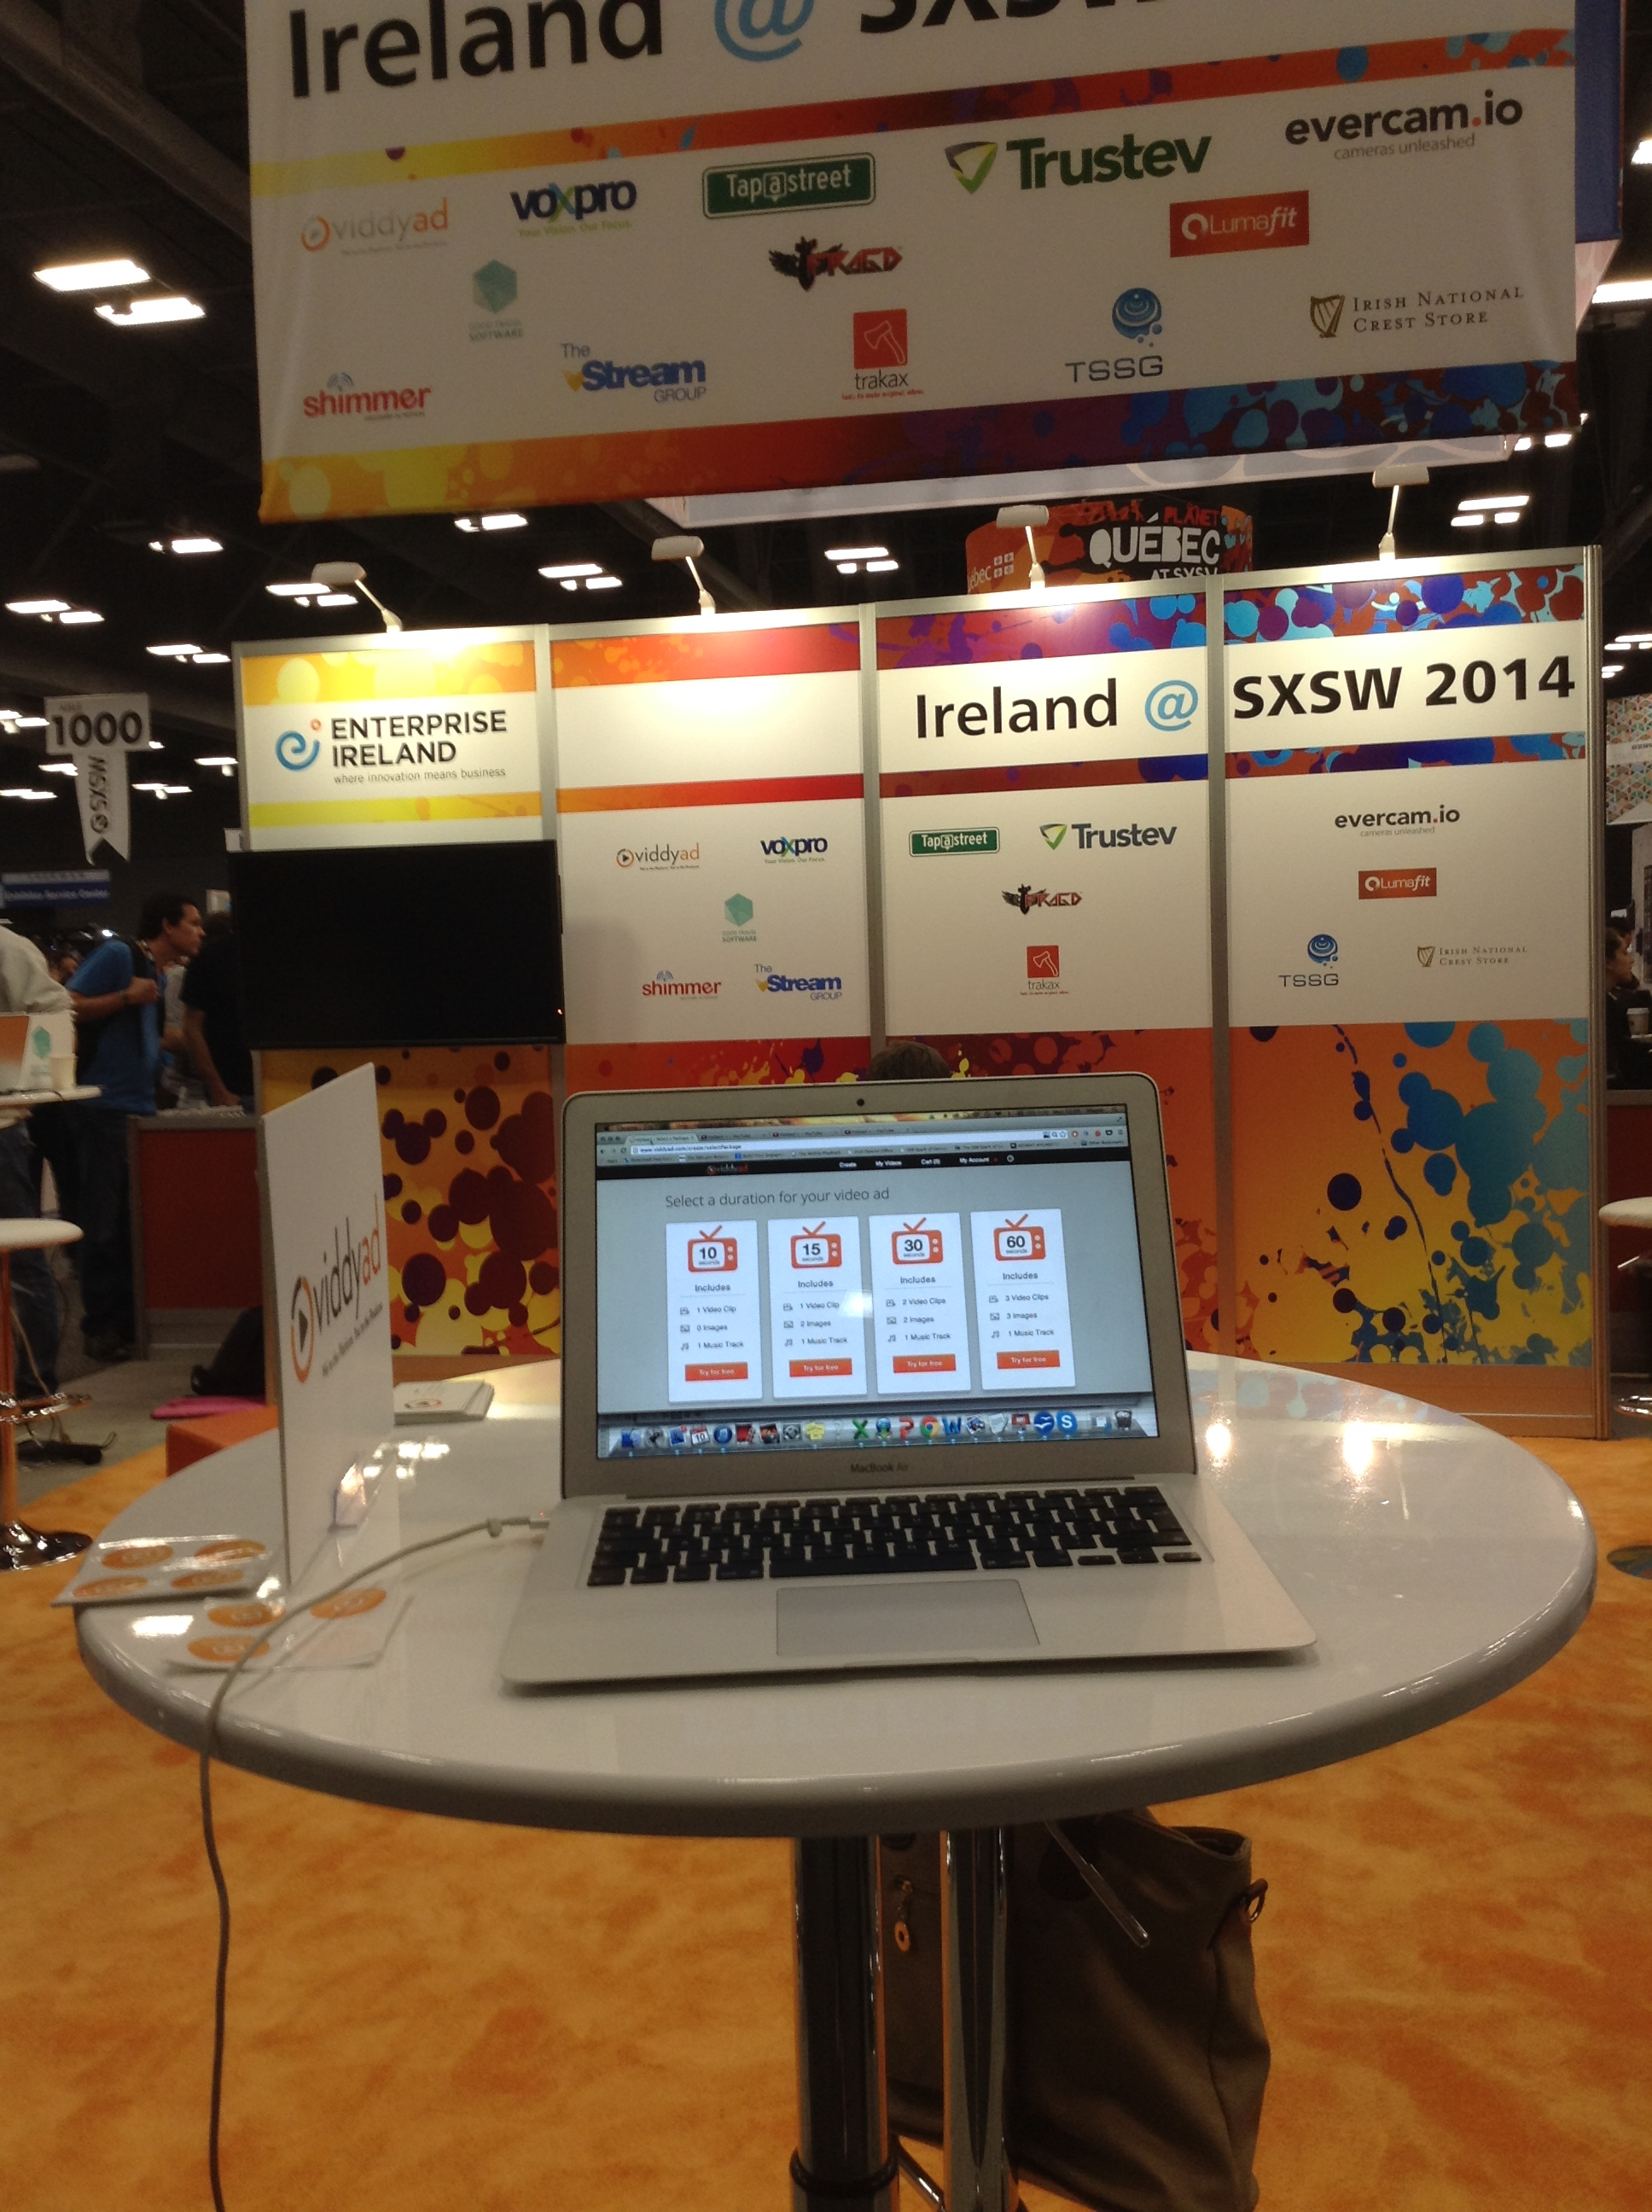 Viddyad was part of the Irish Delegation attending SXSW with Enterprise Ireland